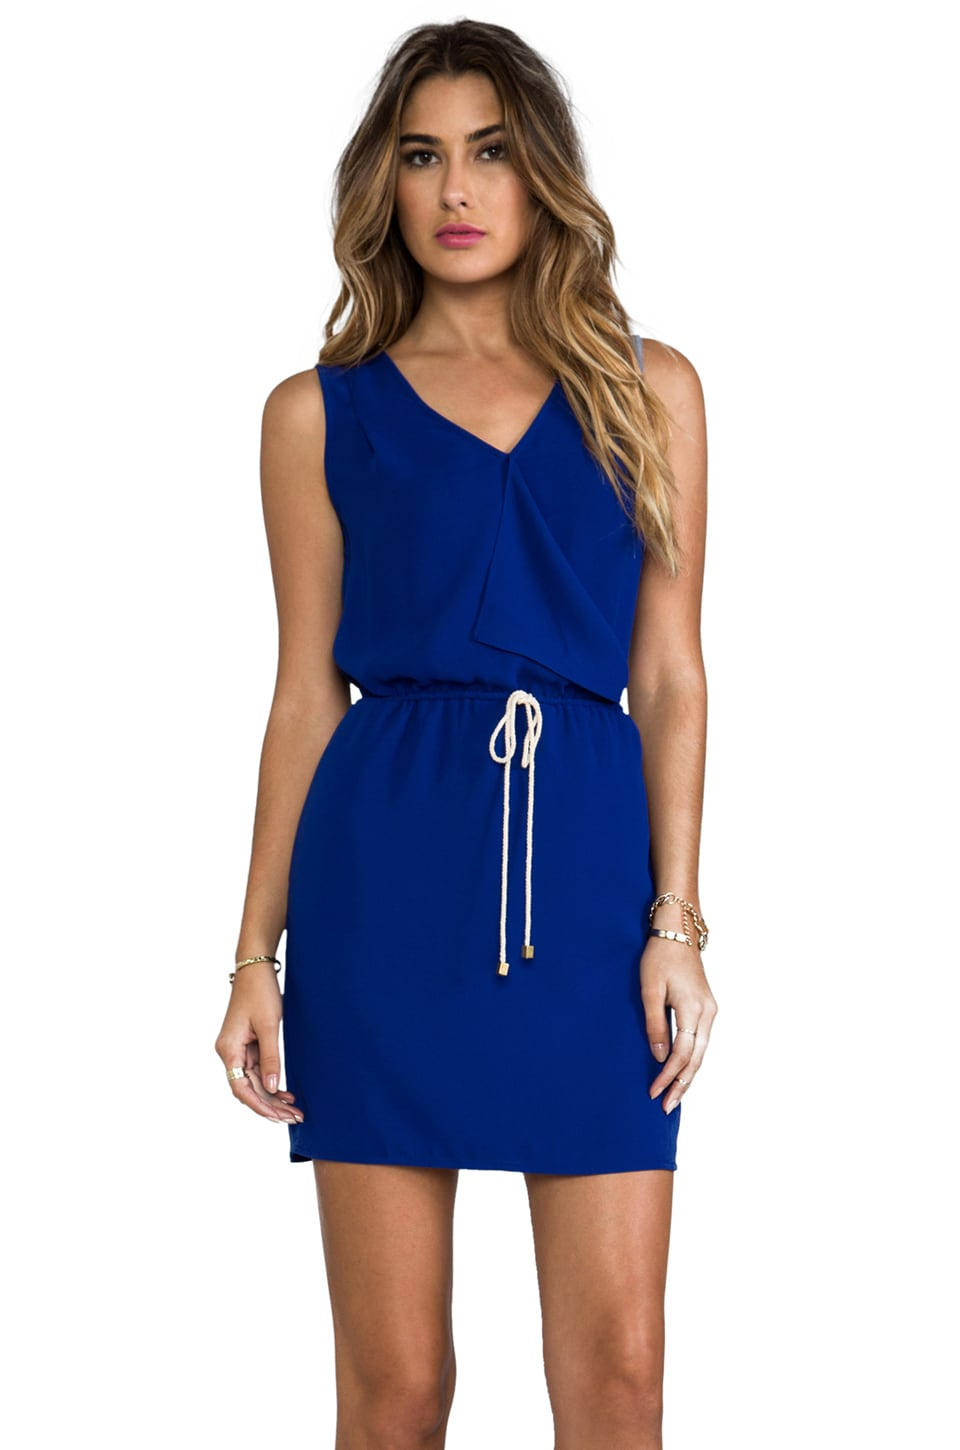 Greylin Carly Dress in Cobalt Blue